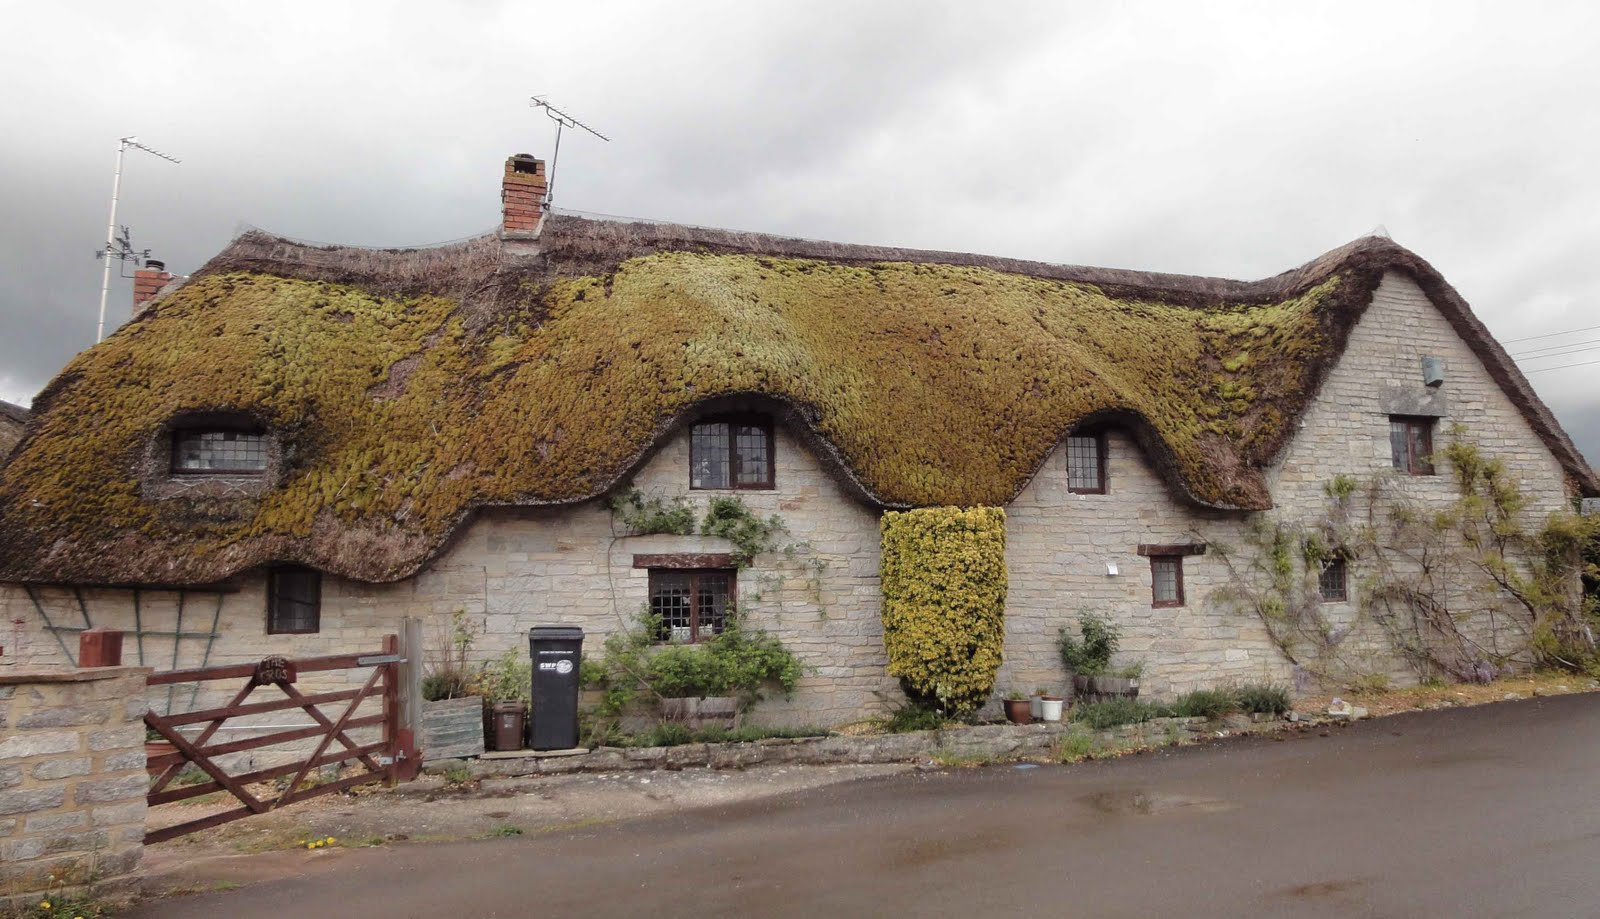 Europe au pif touring in glastonbury - The thatched cottage ...